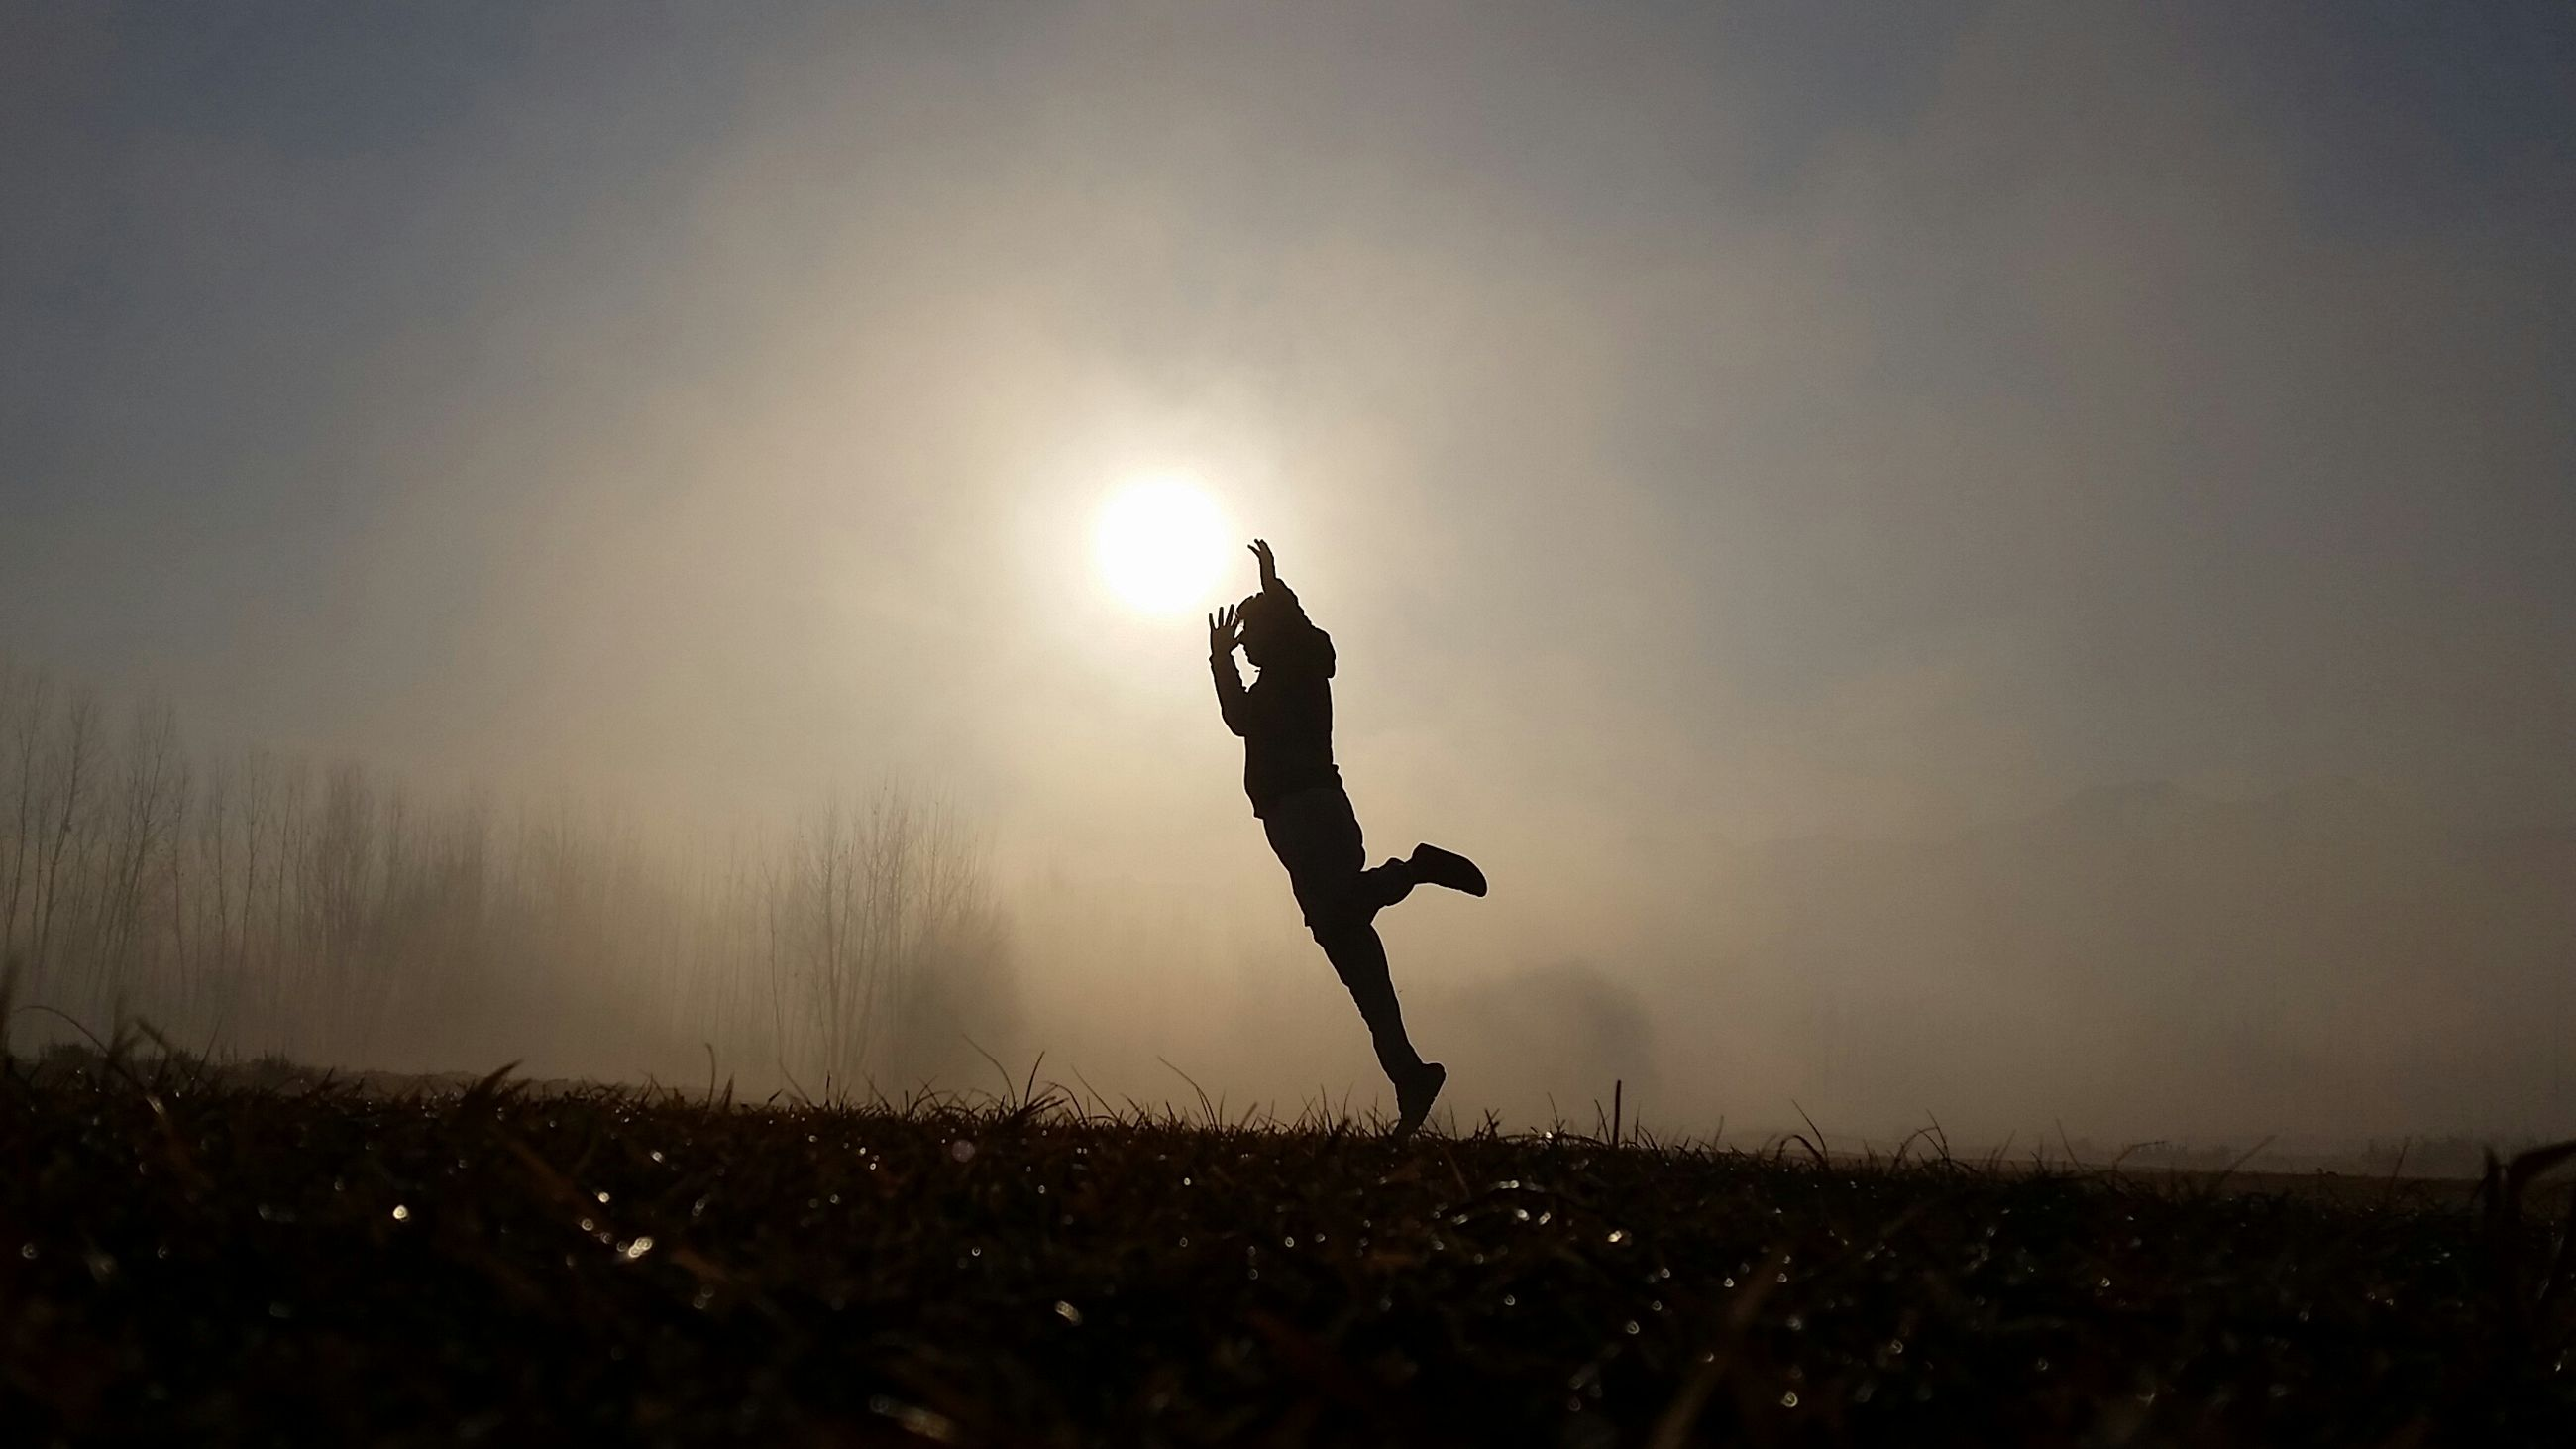 silhouette, lifestyles, leisure activity, full length, mid-air, men, sunset, field, enjoyment, sky, landscape, arms raised, carefree, freedom, standing, dusk, copy space, jumping